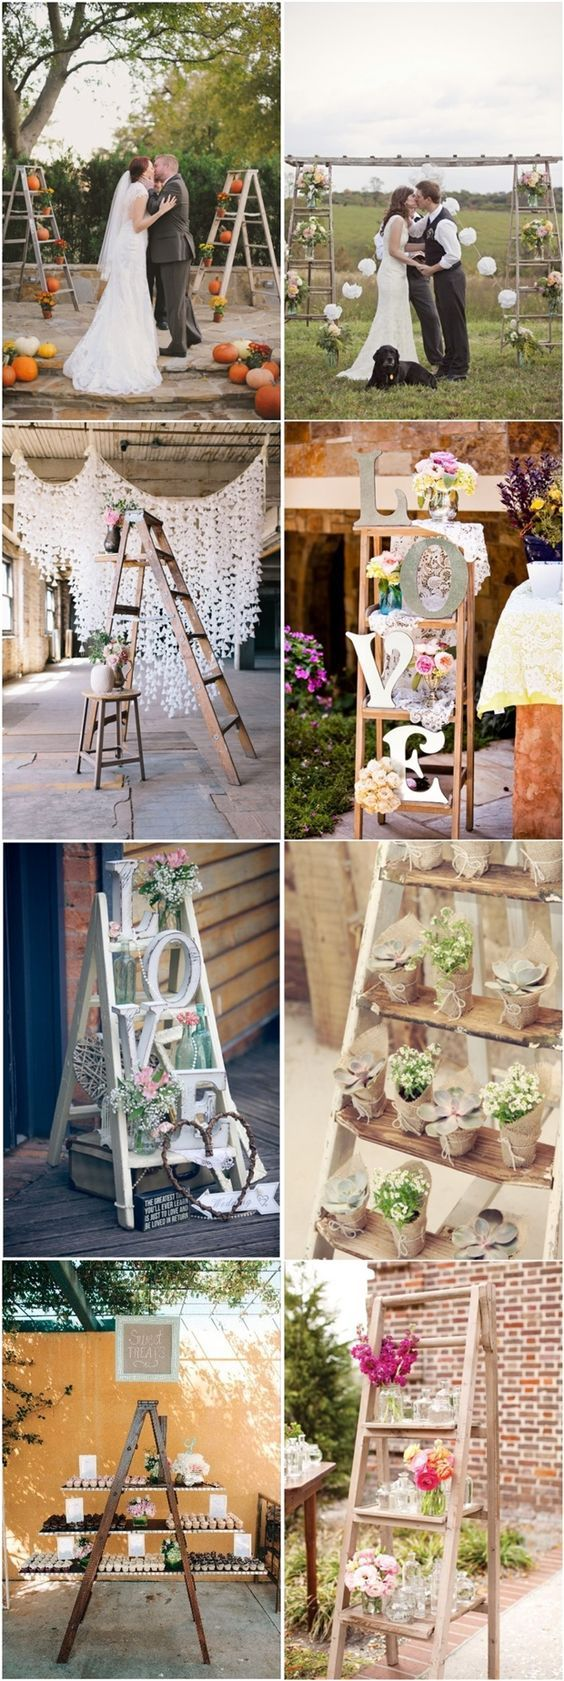 vintage rustic country wedding decor ideas- ladder wedding ideas / http://www.deerpearlflowers.com/40-chic-ways-to-use-ladder-in-rustic-country-weddings/